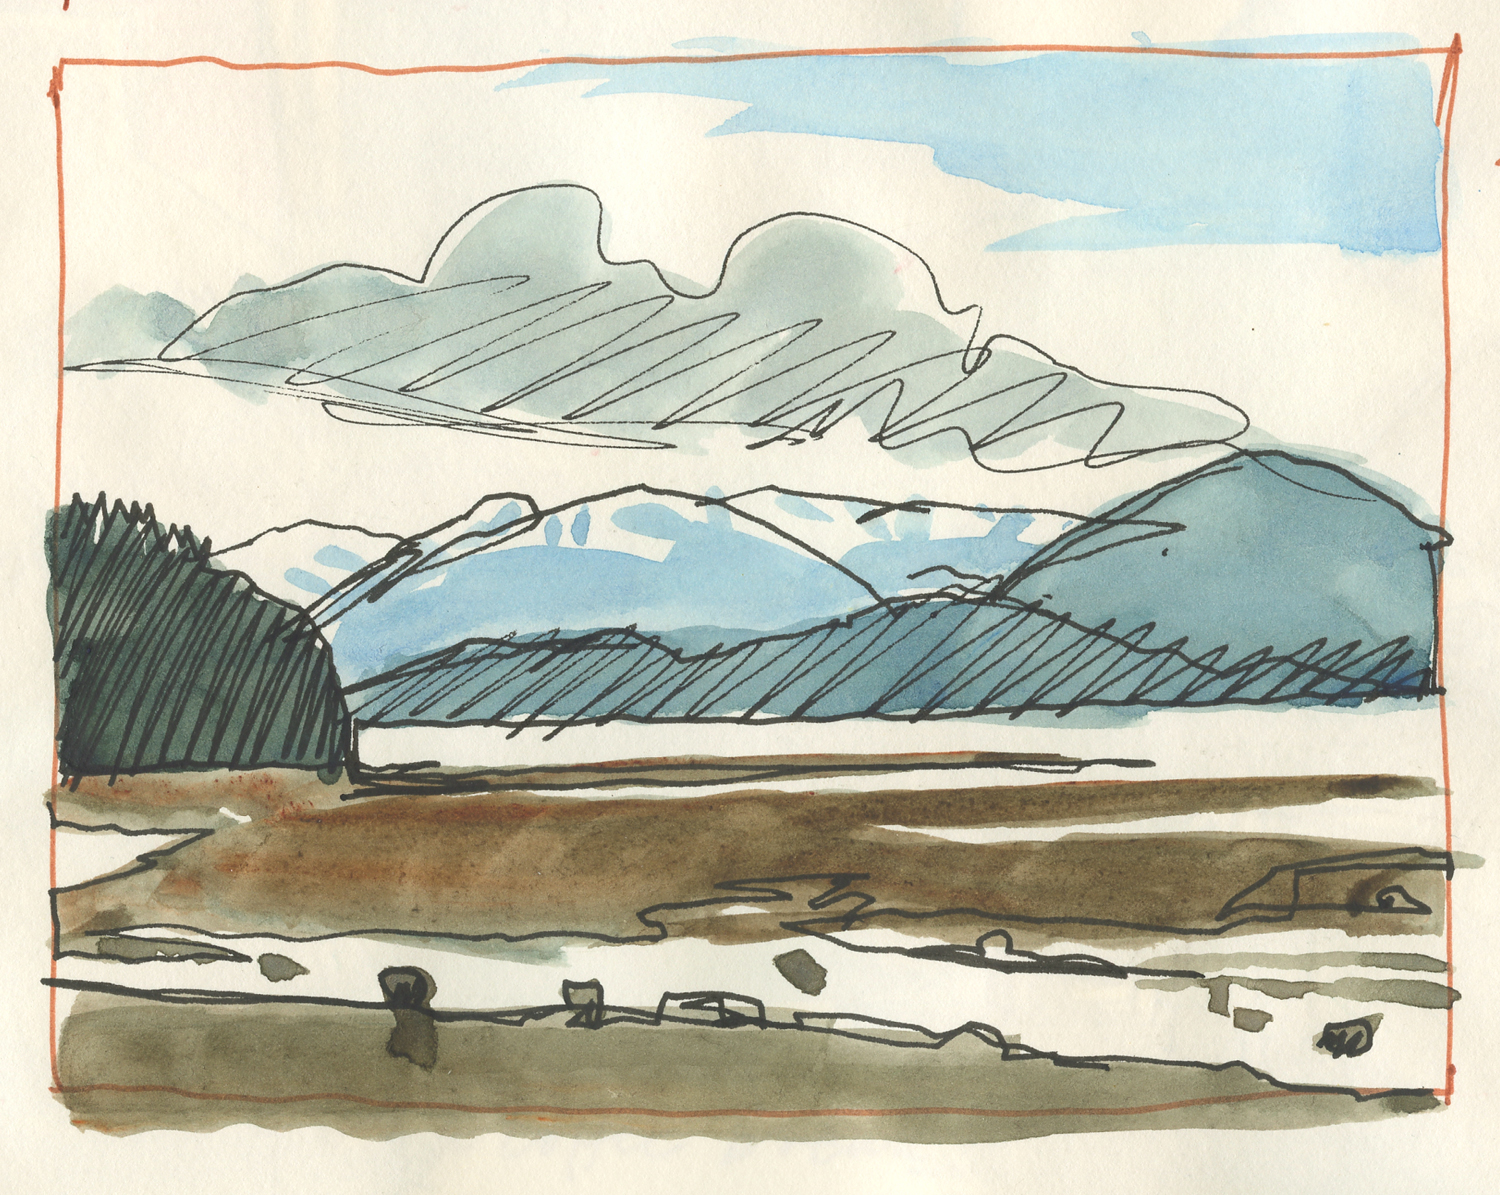 Alaska_sketchbook1_edited-1.jpg